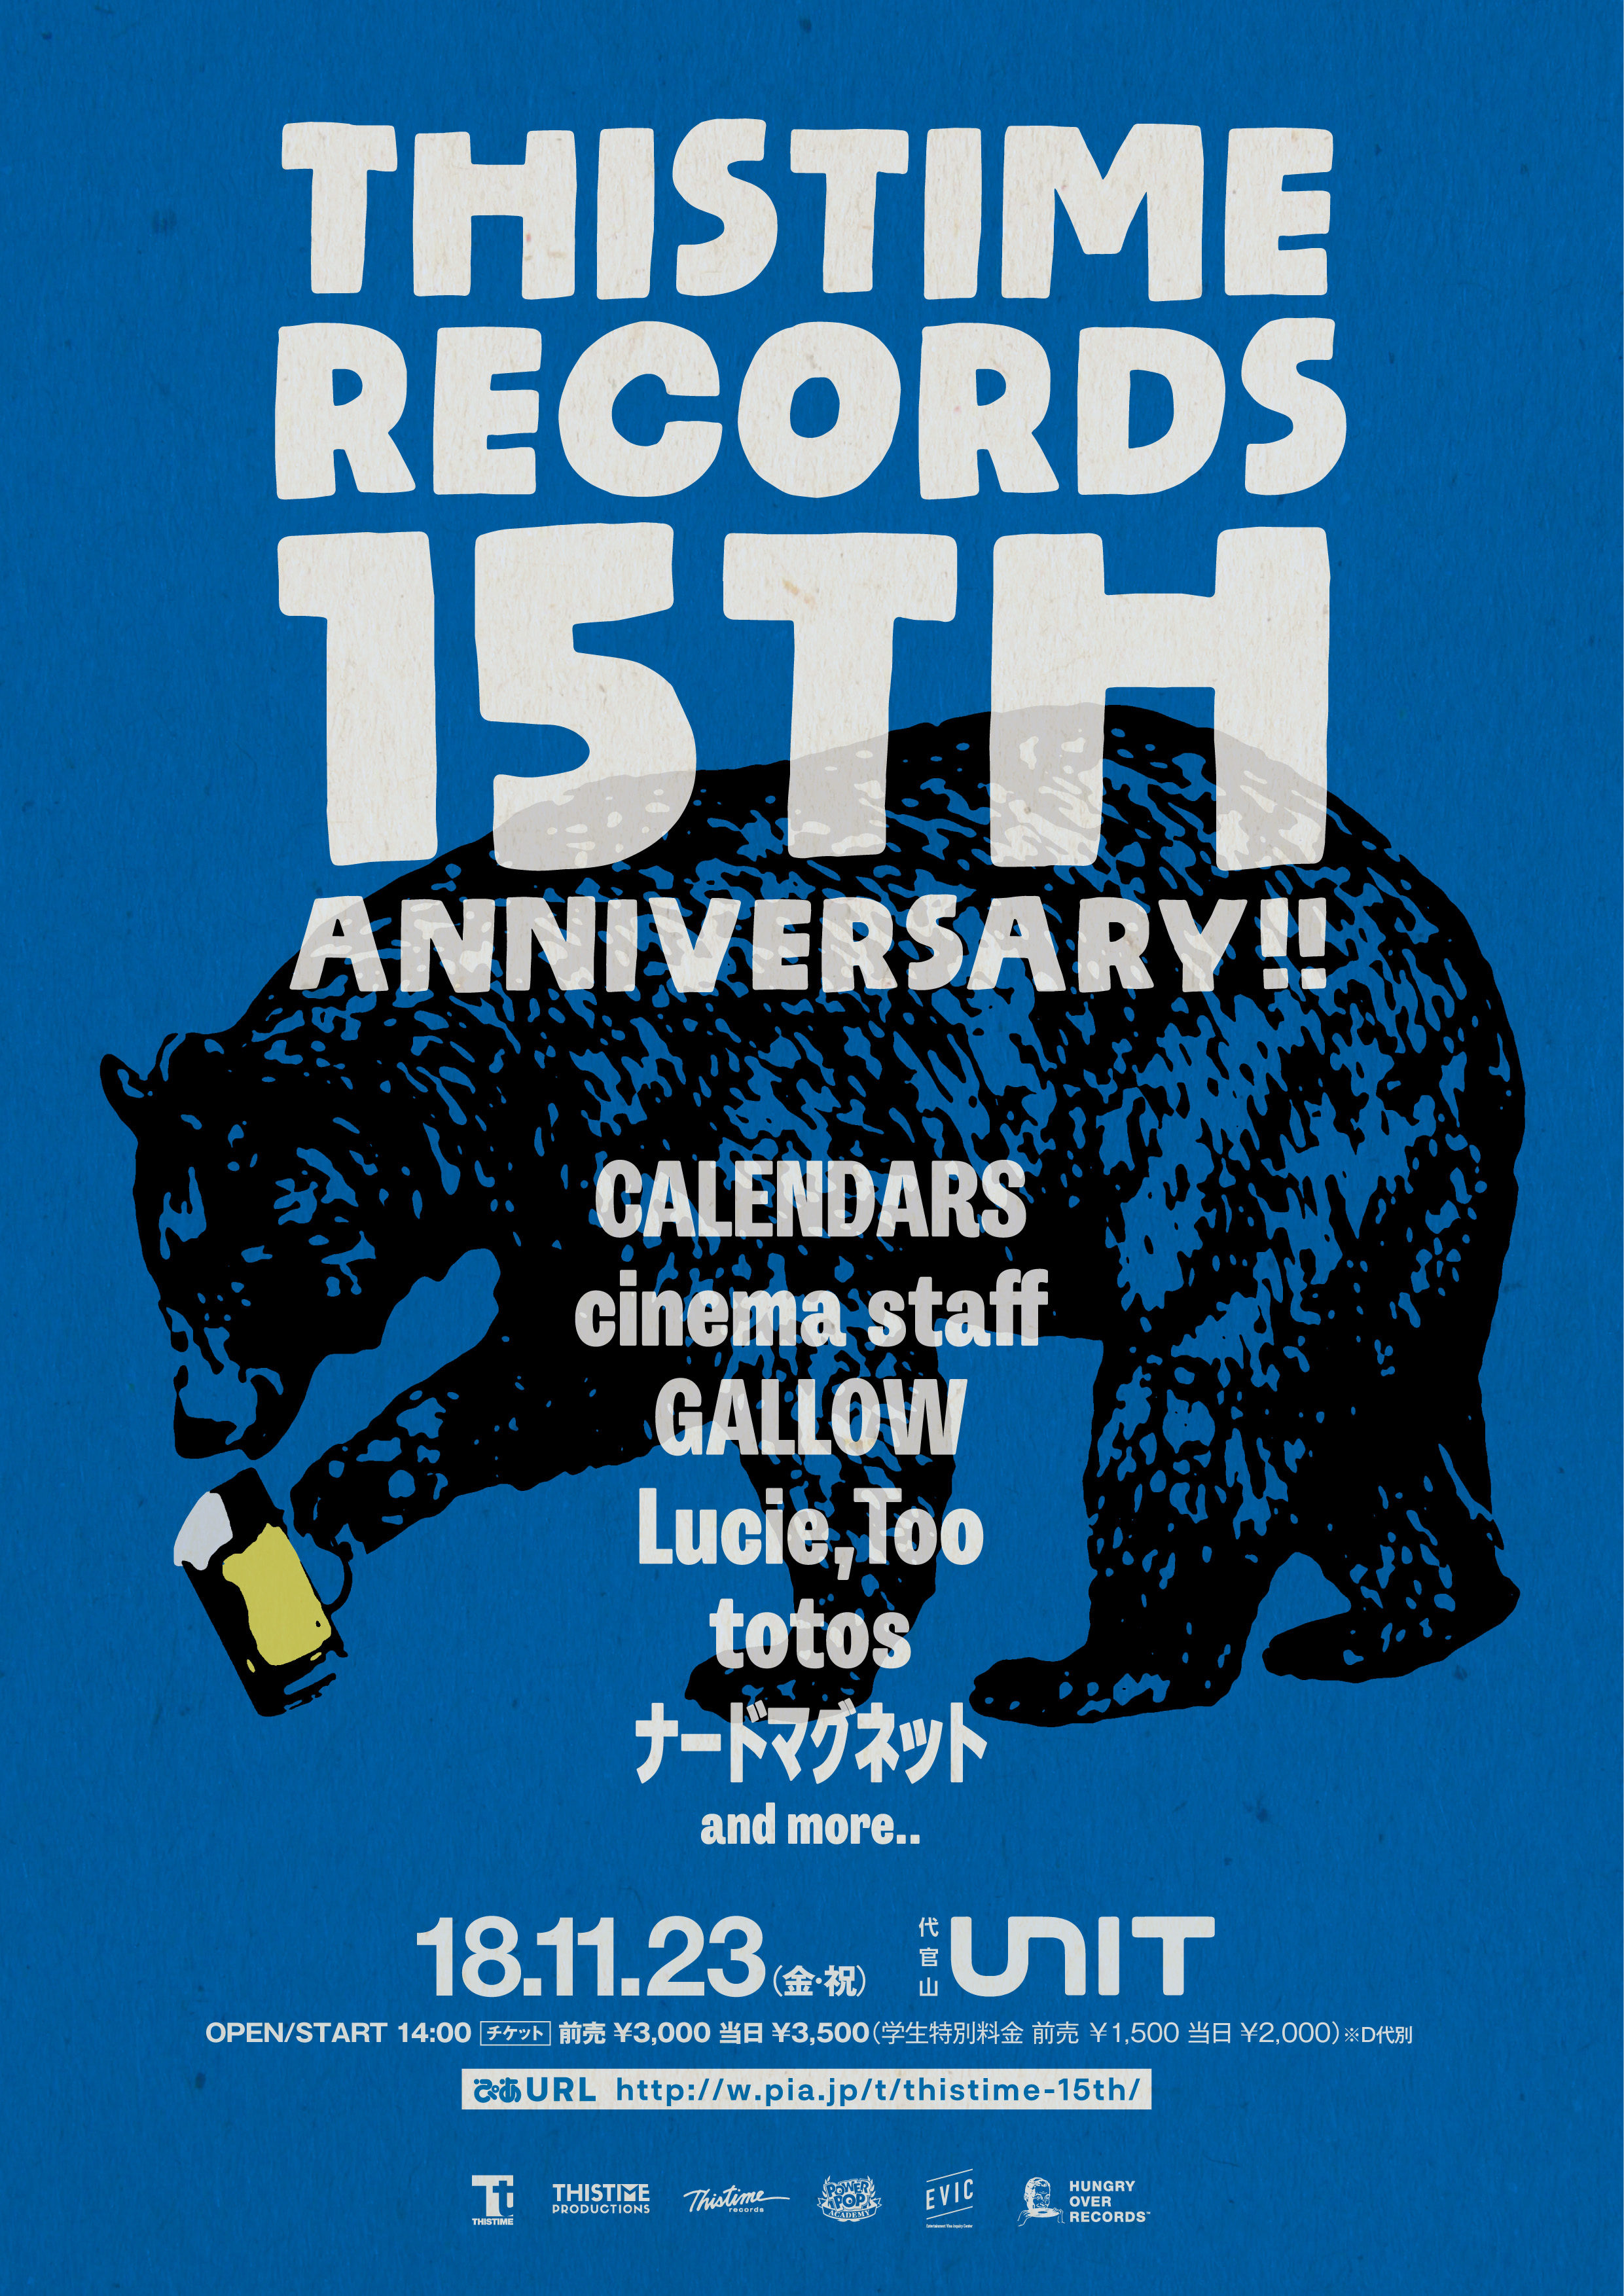 THISTIME RECORDS 15TH ANNIVERSARY !!